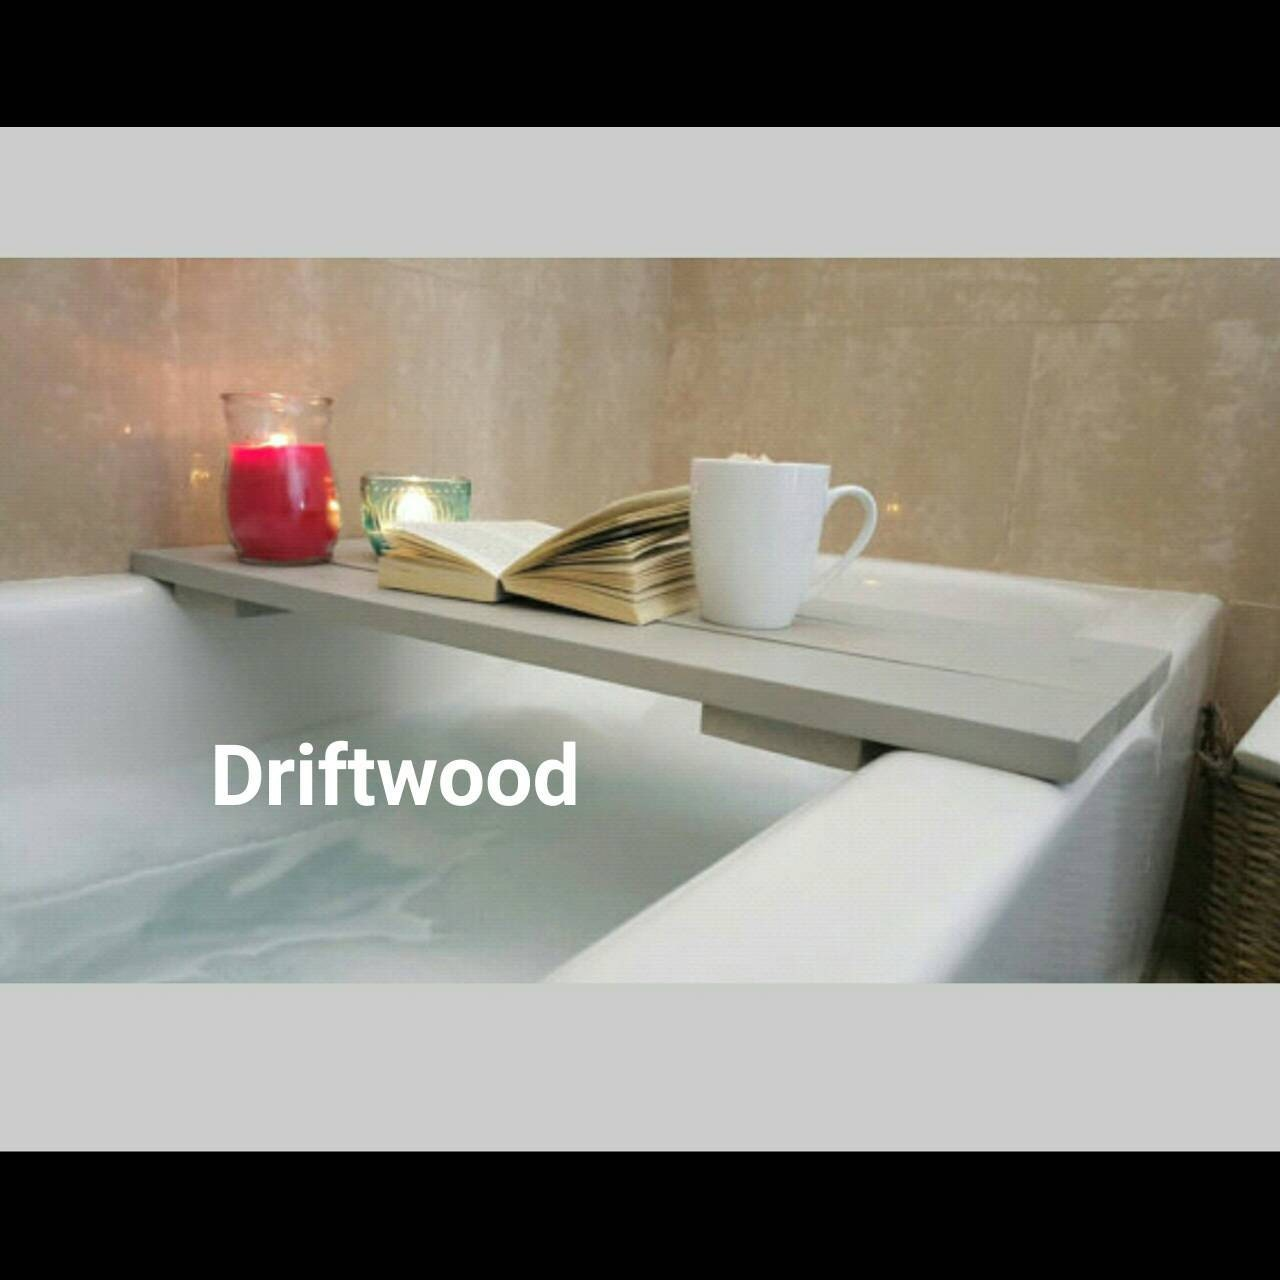 wood uk tray winsome size with full plans mesmerizing stainless bath images bathtubs caddy bathtub